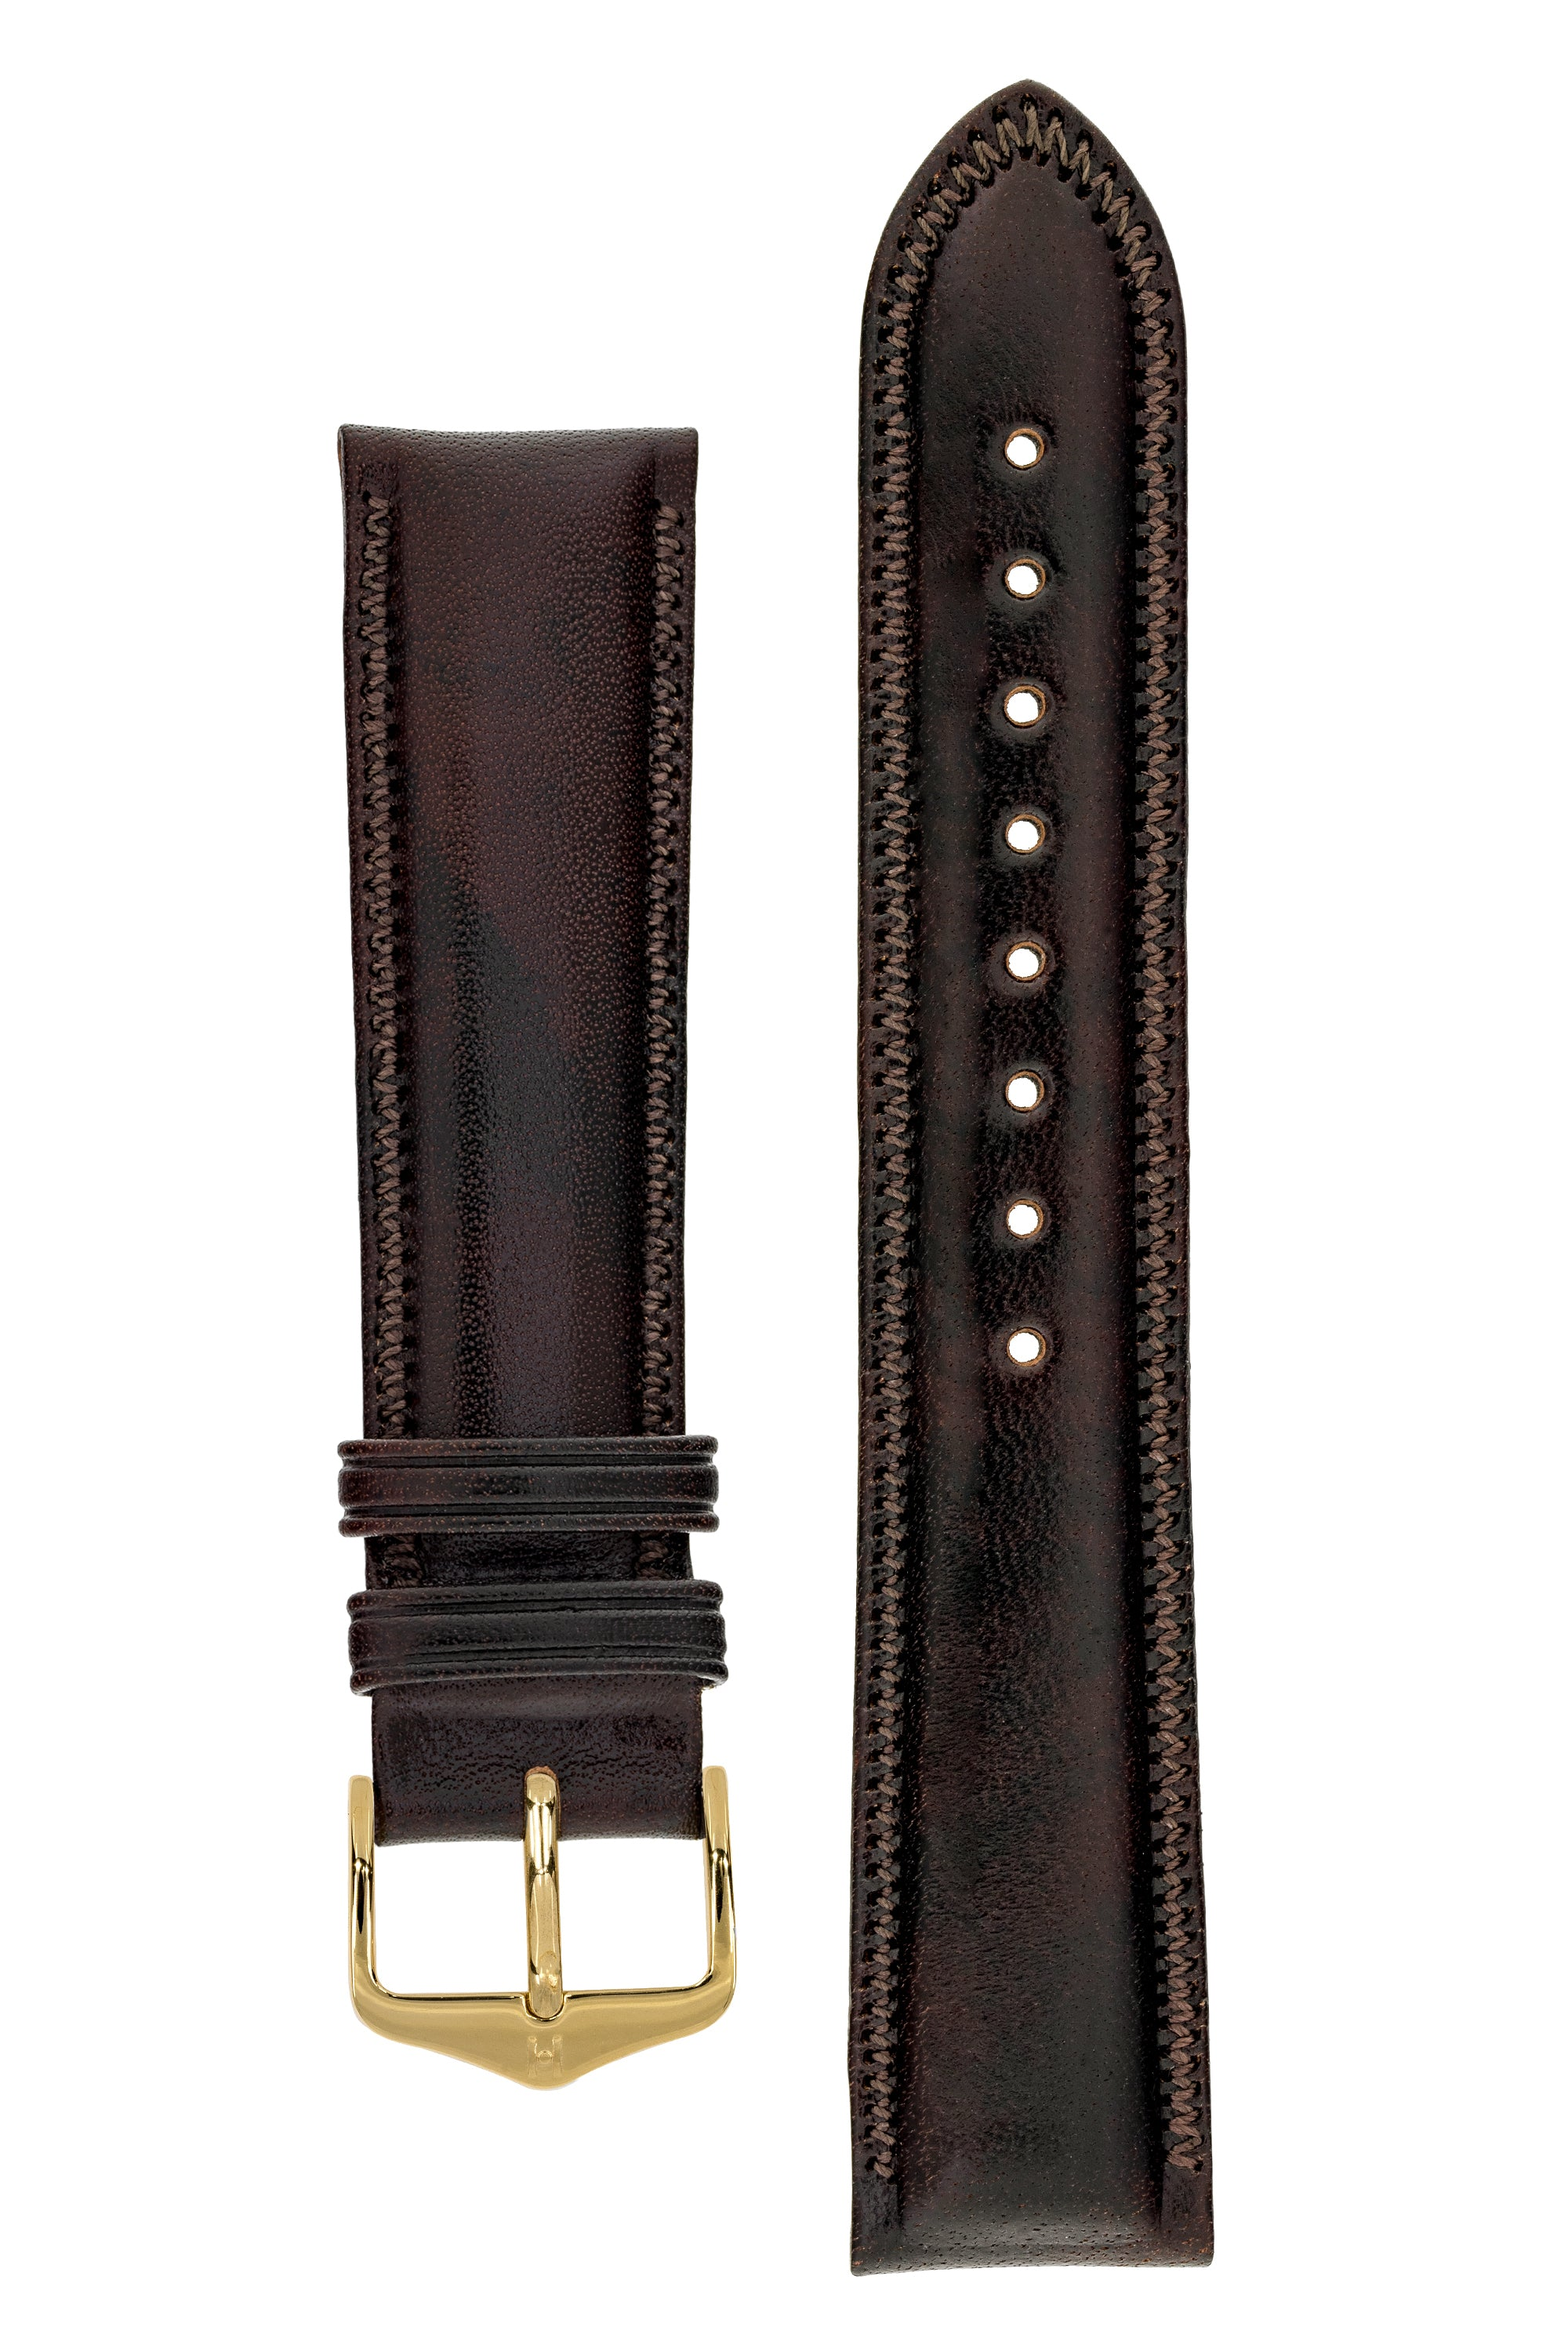 Hirsch ASCOT English Leather Watch Strap in BROWN